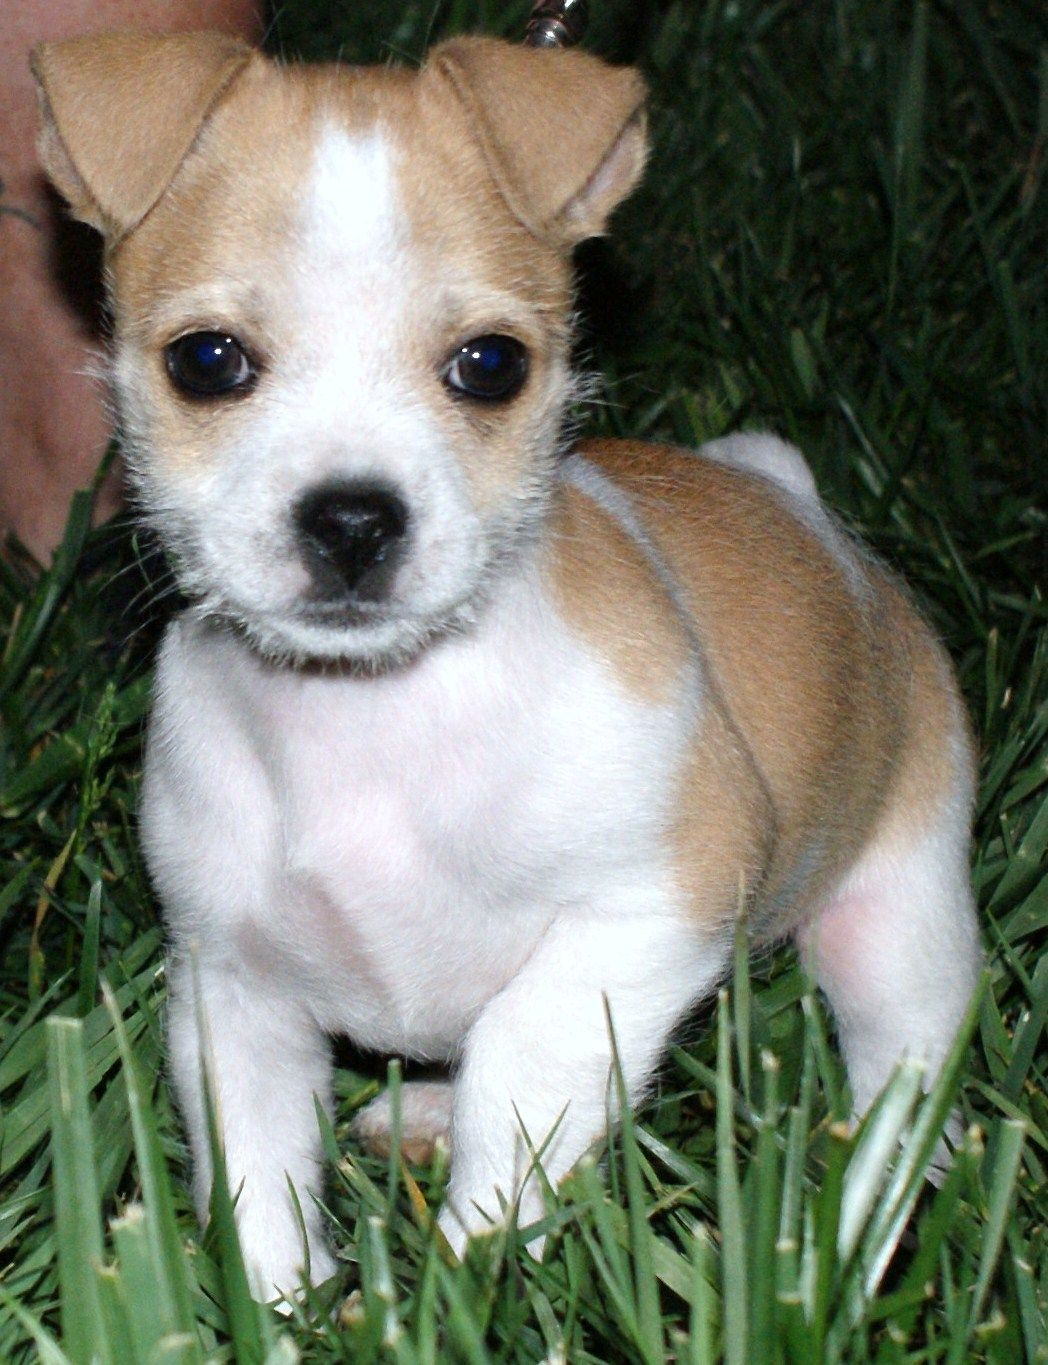 This Is Marvel He Is 10 Weeks Old He Is A Jack Russell Chihuahua